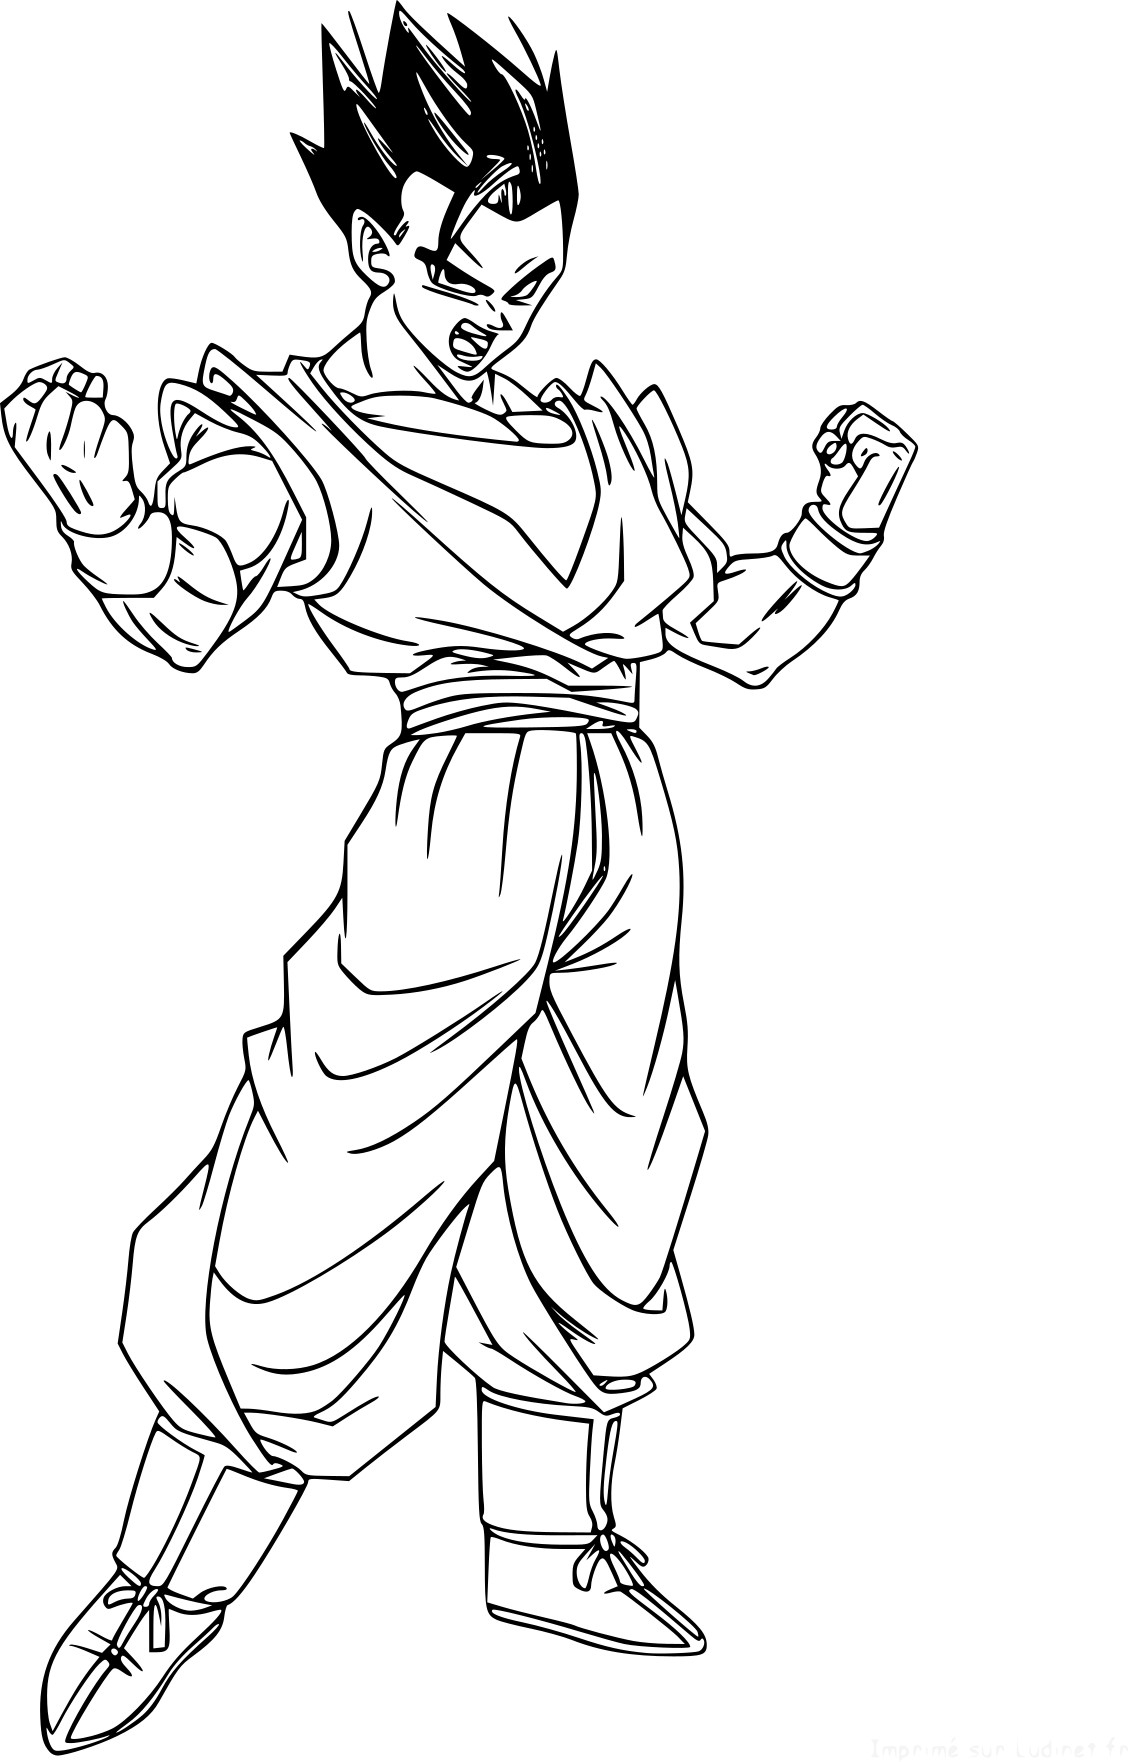 Unique Coloriage A Imprimer Dragon Ball Z Sangohan concernant Coloriage Dragon Ball Z Sangoku